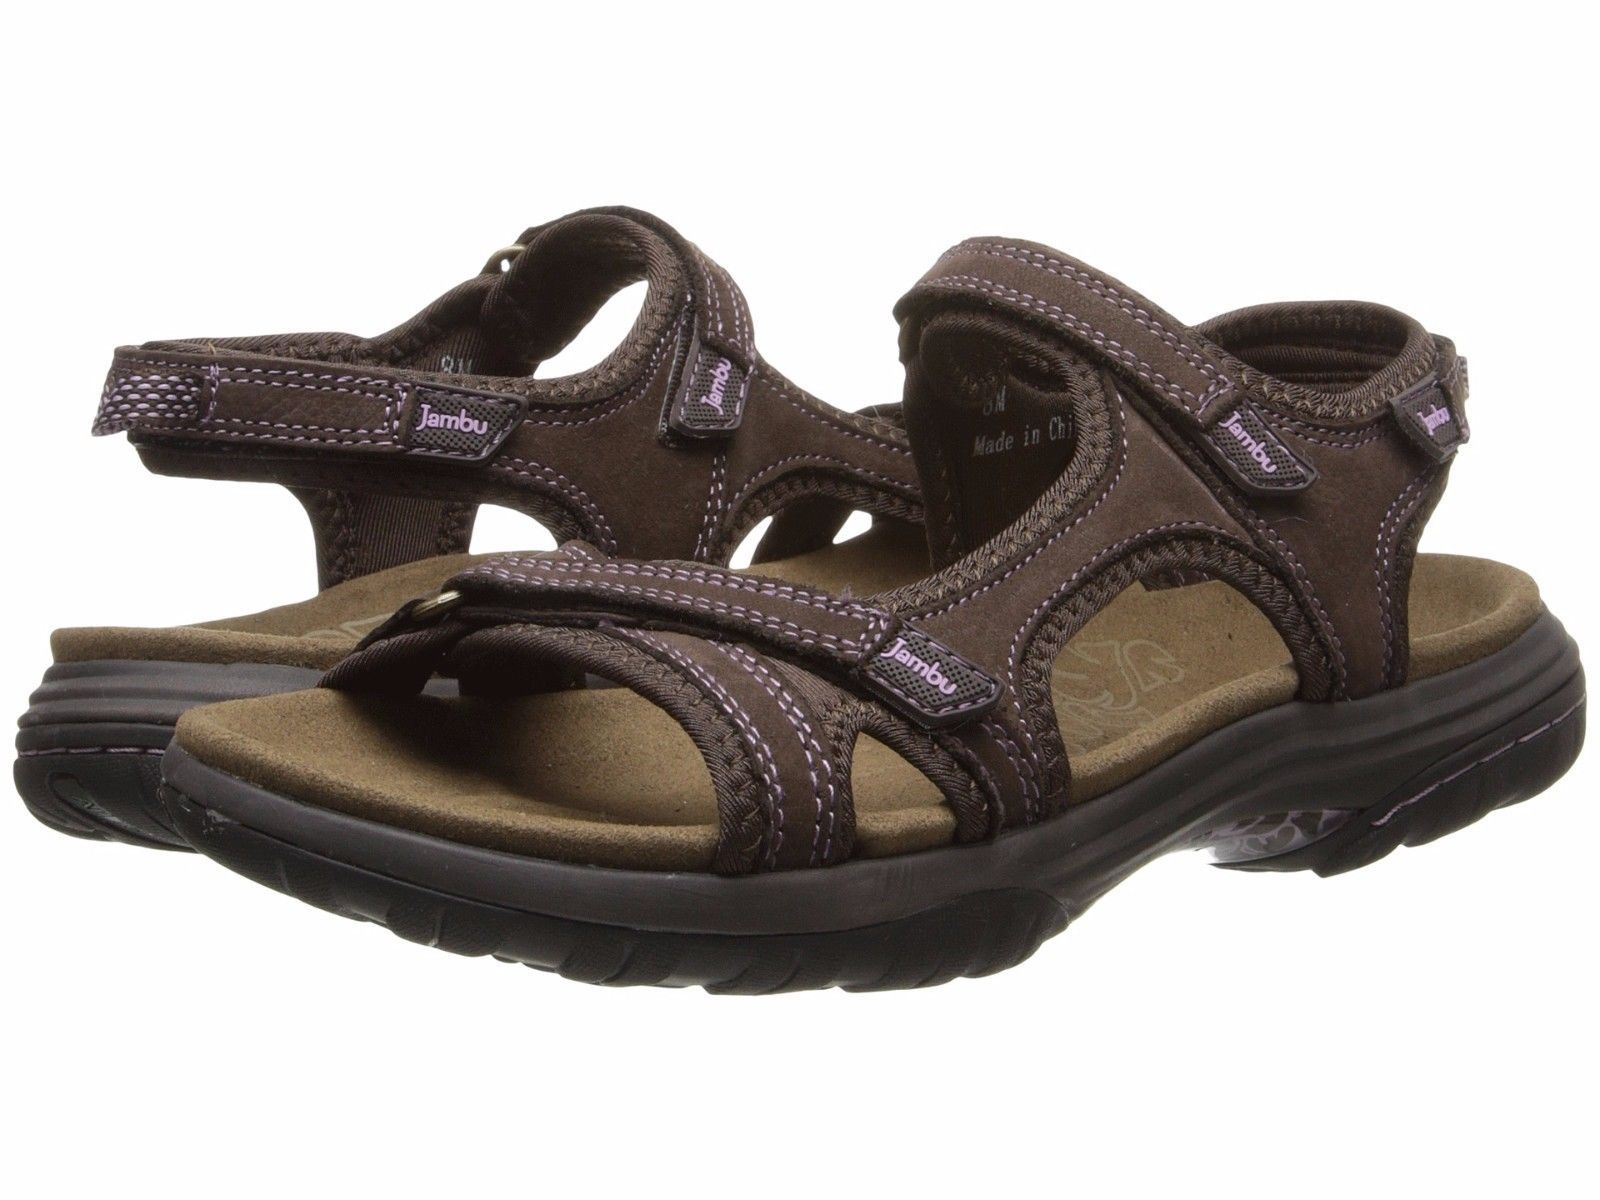 Primary image for Size 8.5 JAMBU Womens Sandal Shoe! Reg$100 Sale$59.99 LastPairs!